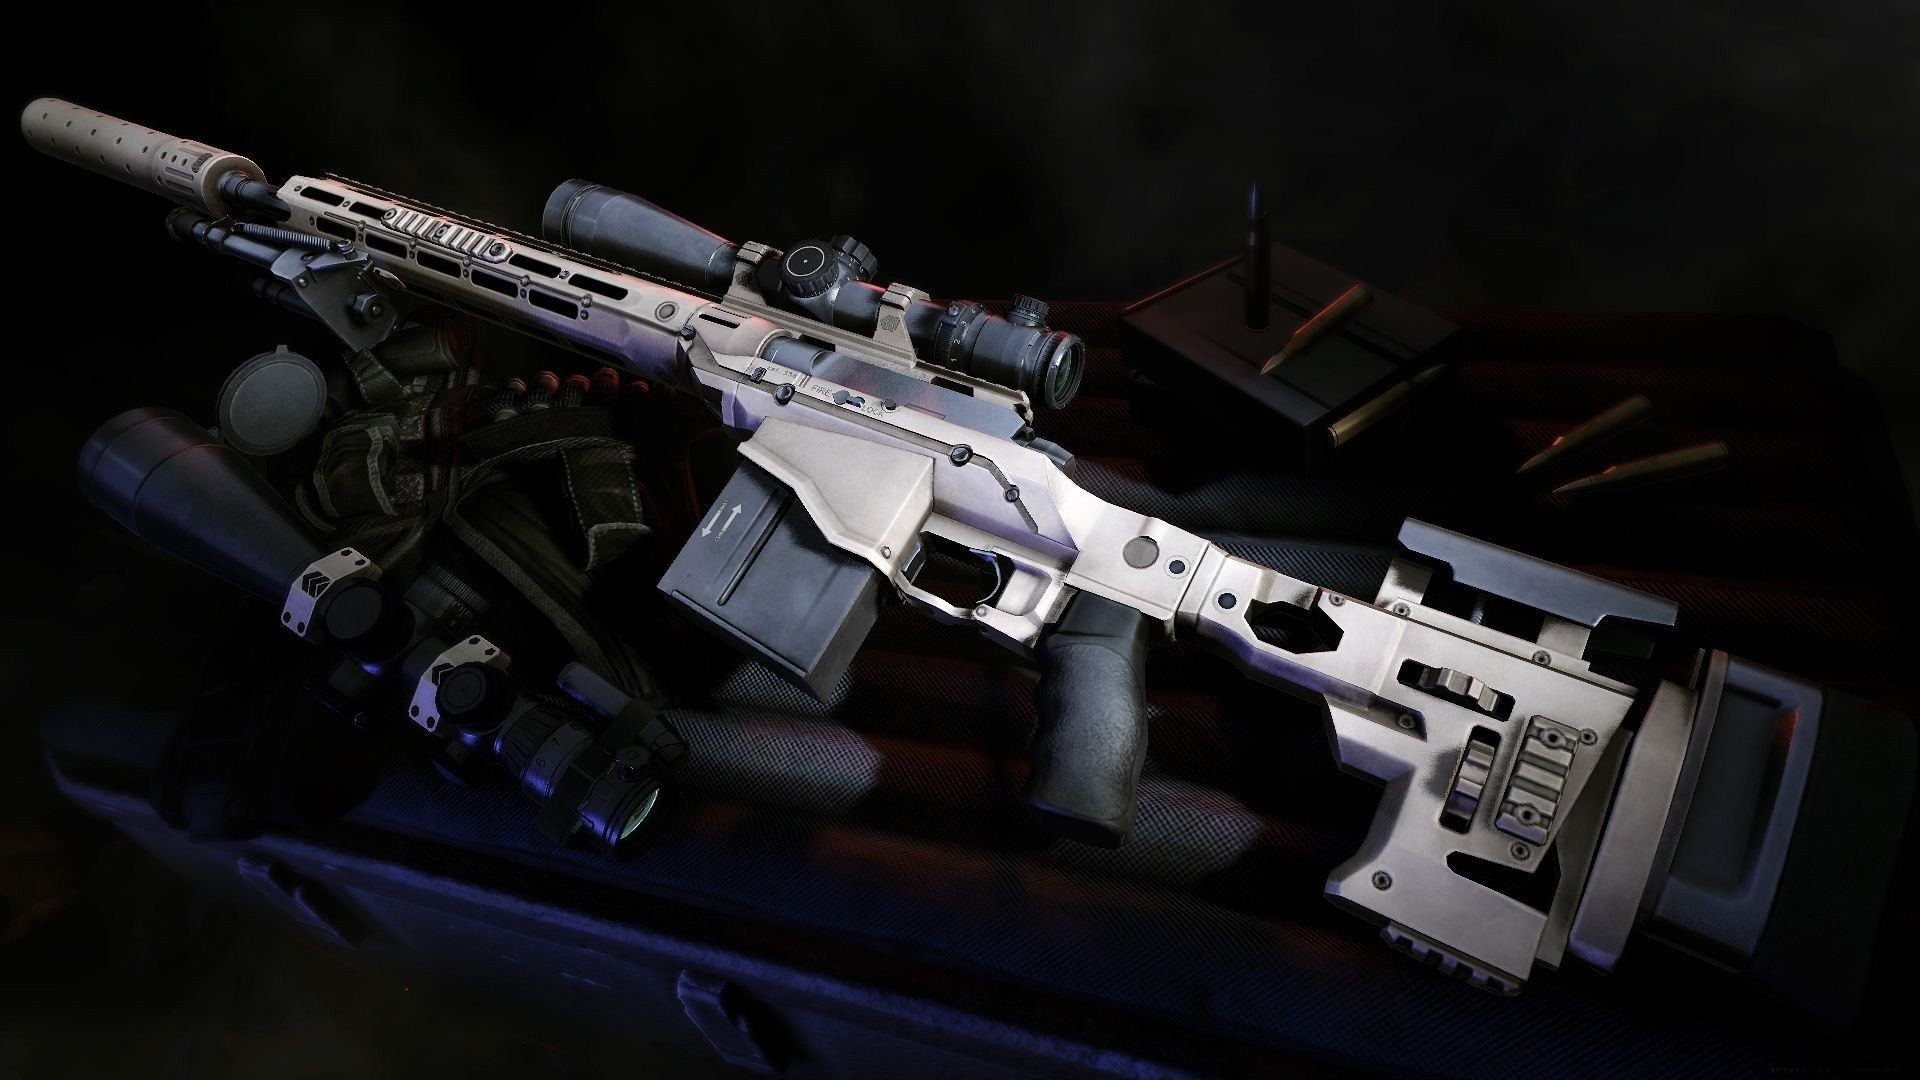 1920x1080 sniper rifle wallpaper 44088